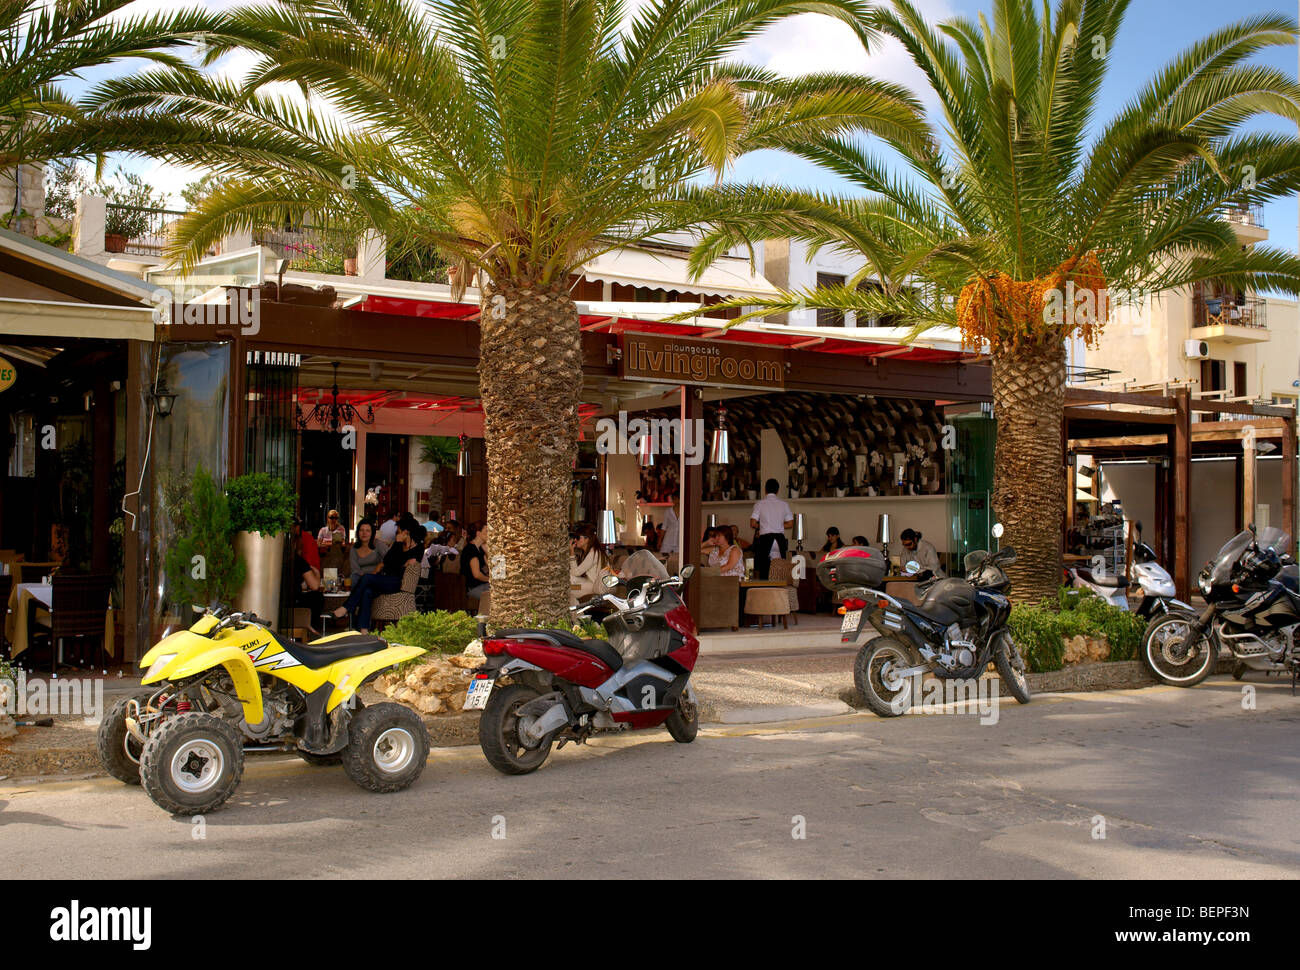 Crowded Living Room Caf Bar With Motorbikes And Palm Trees Stock Photo Royalty Free Image